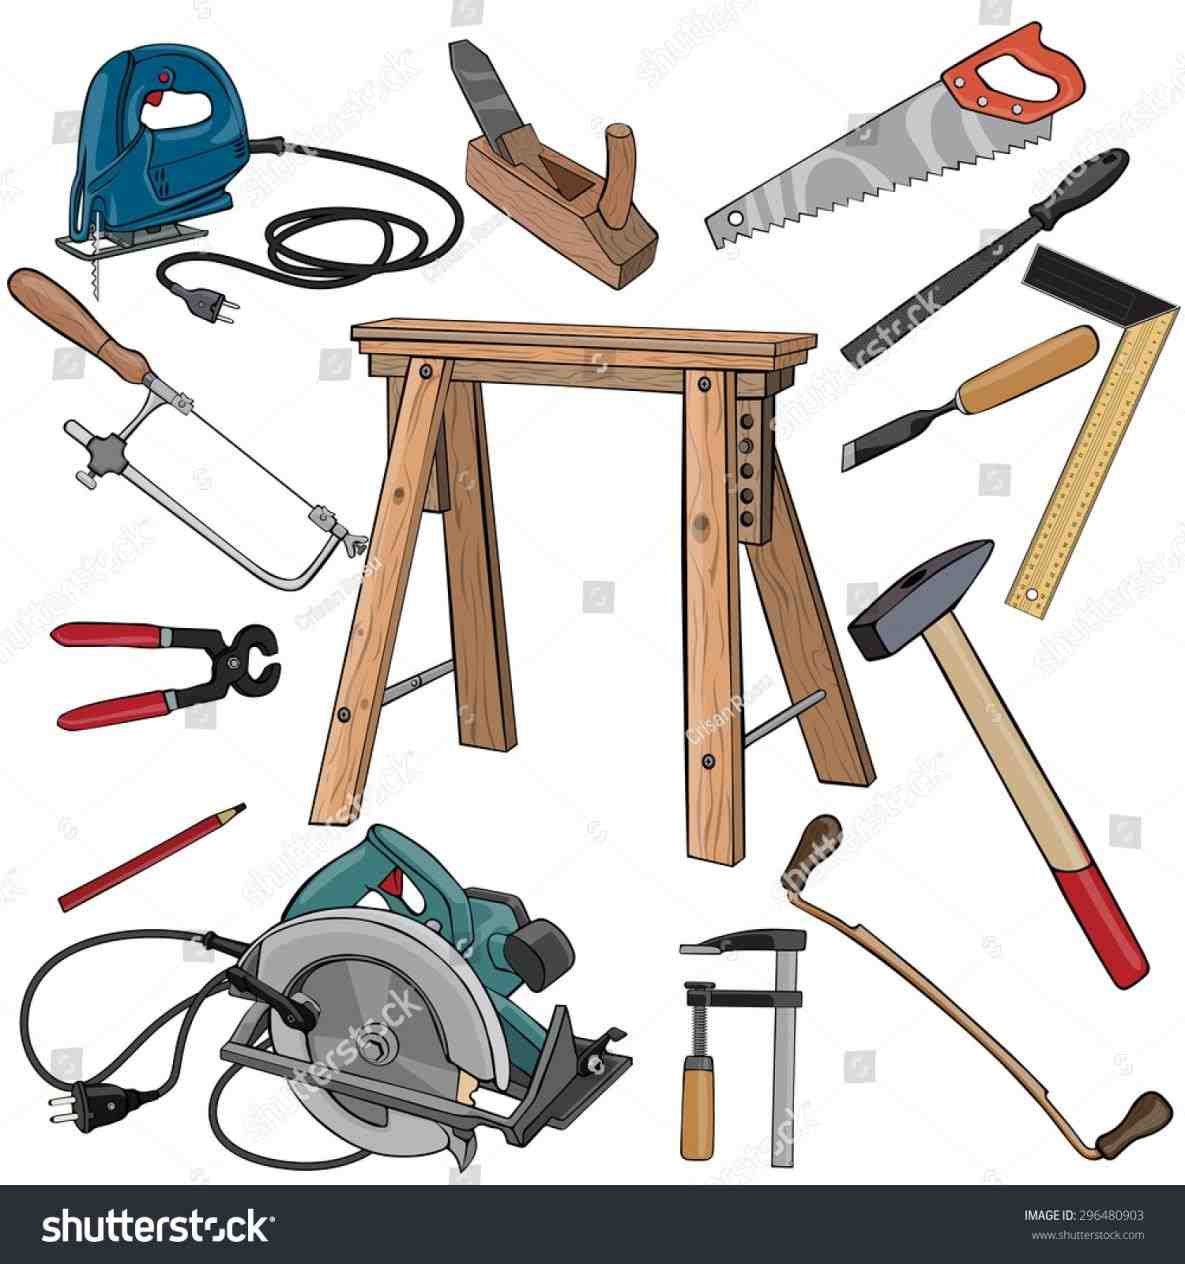 Woodworking tools clipart 7 » Clipart Station.